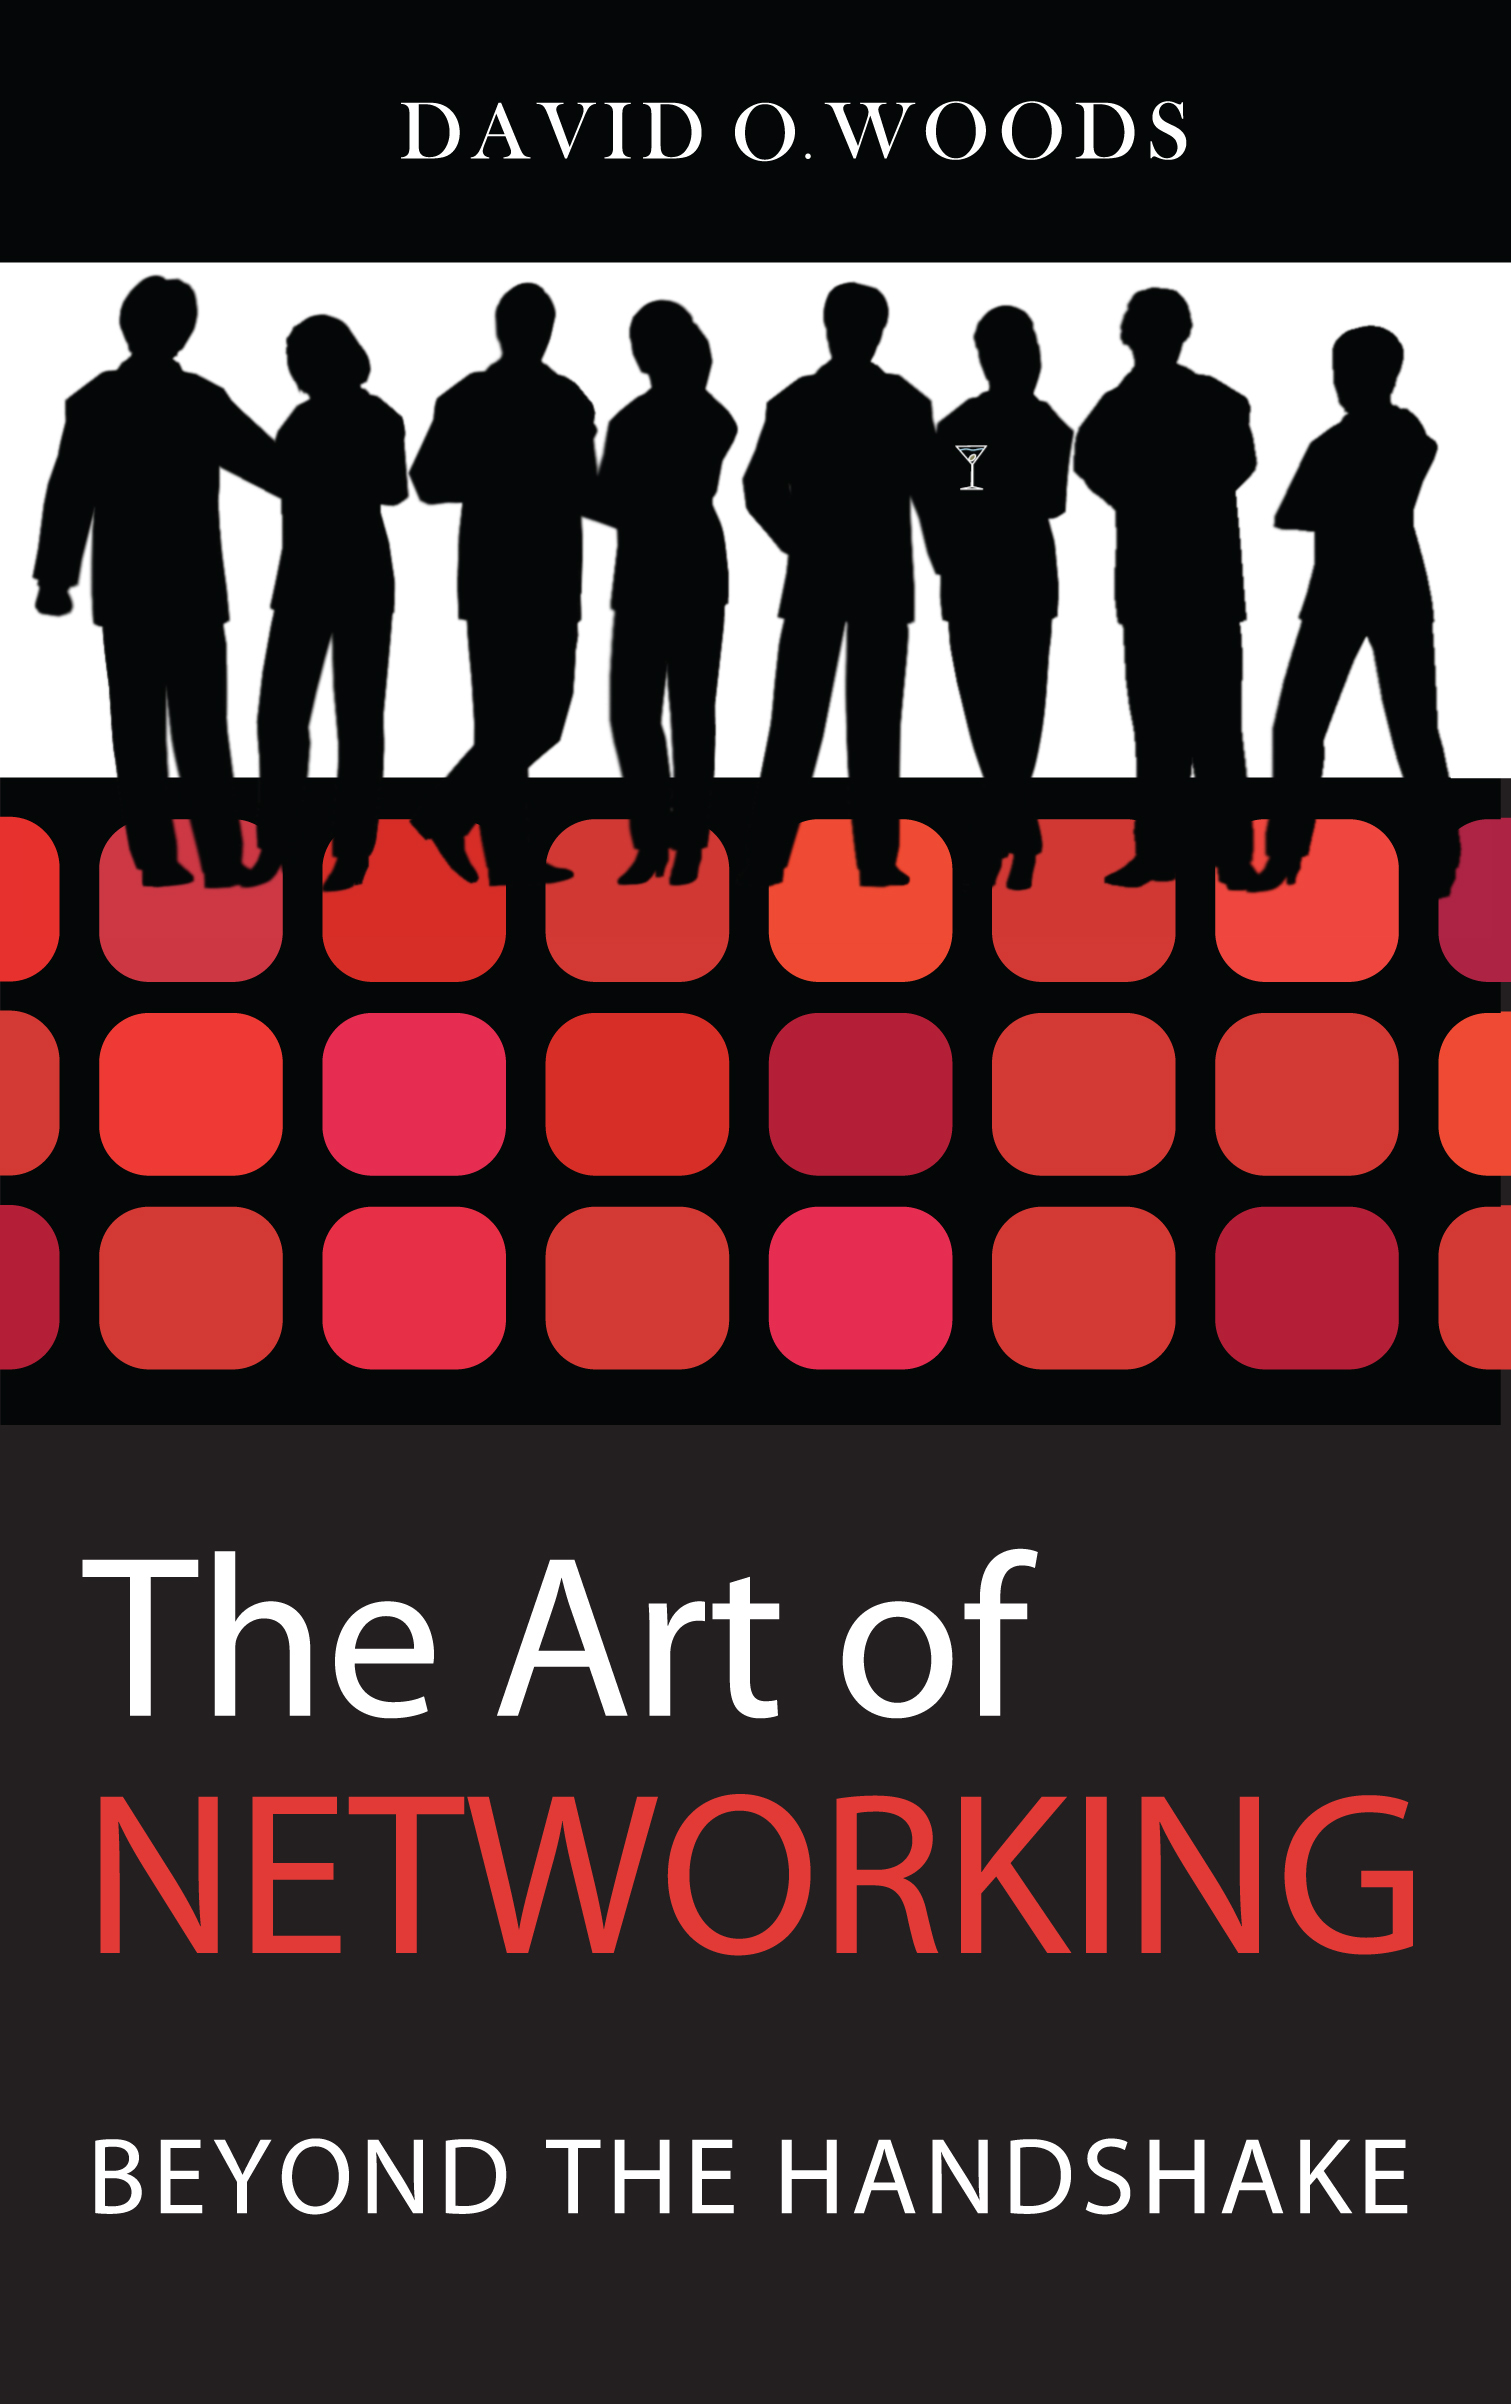 The Art of Networking: Beyond the Handshake